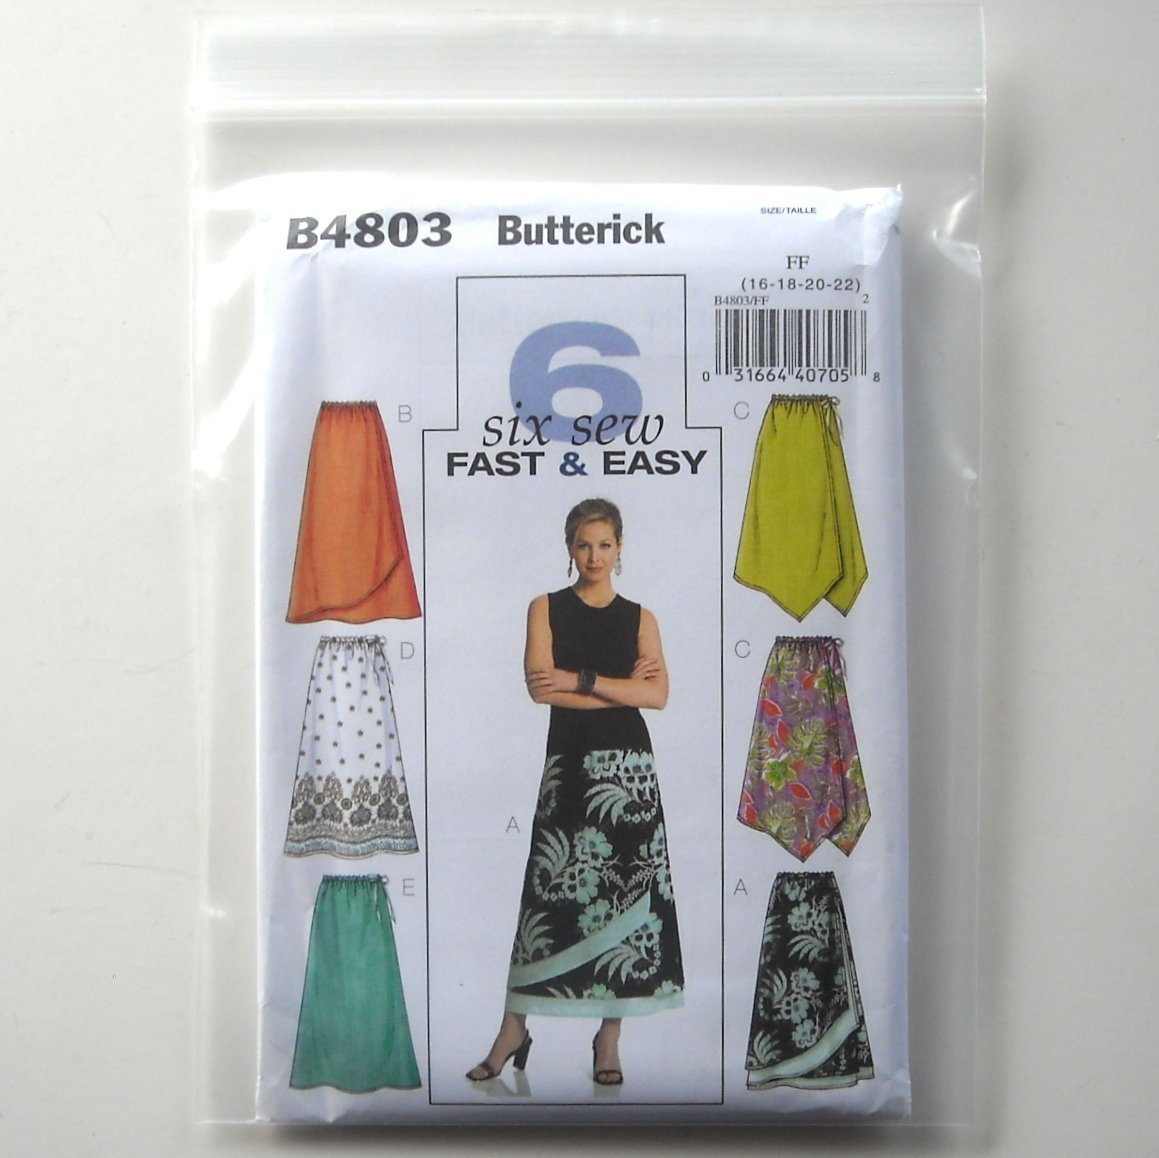 Butterick Pattern B4803 Size 16 - 22 6 Fast Easy Misses Petite Skirt